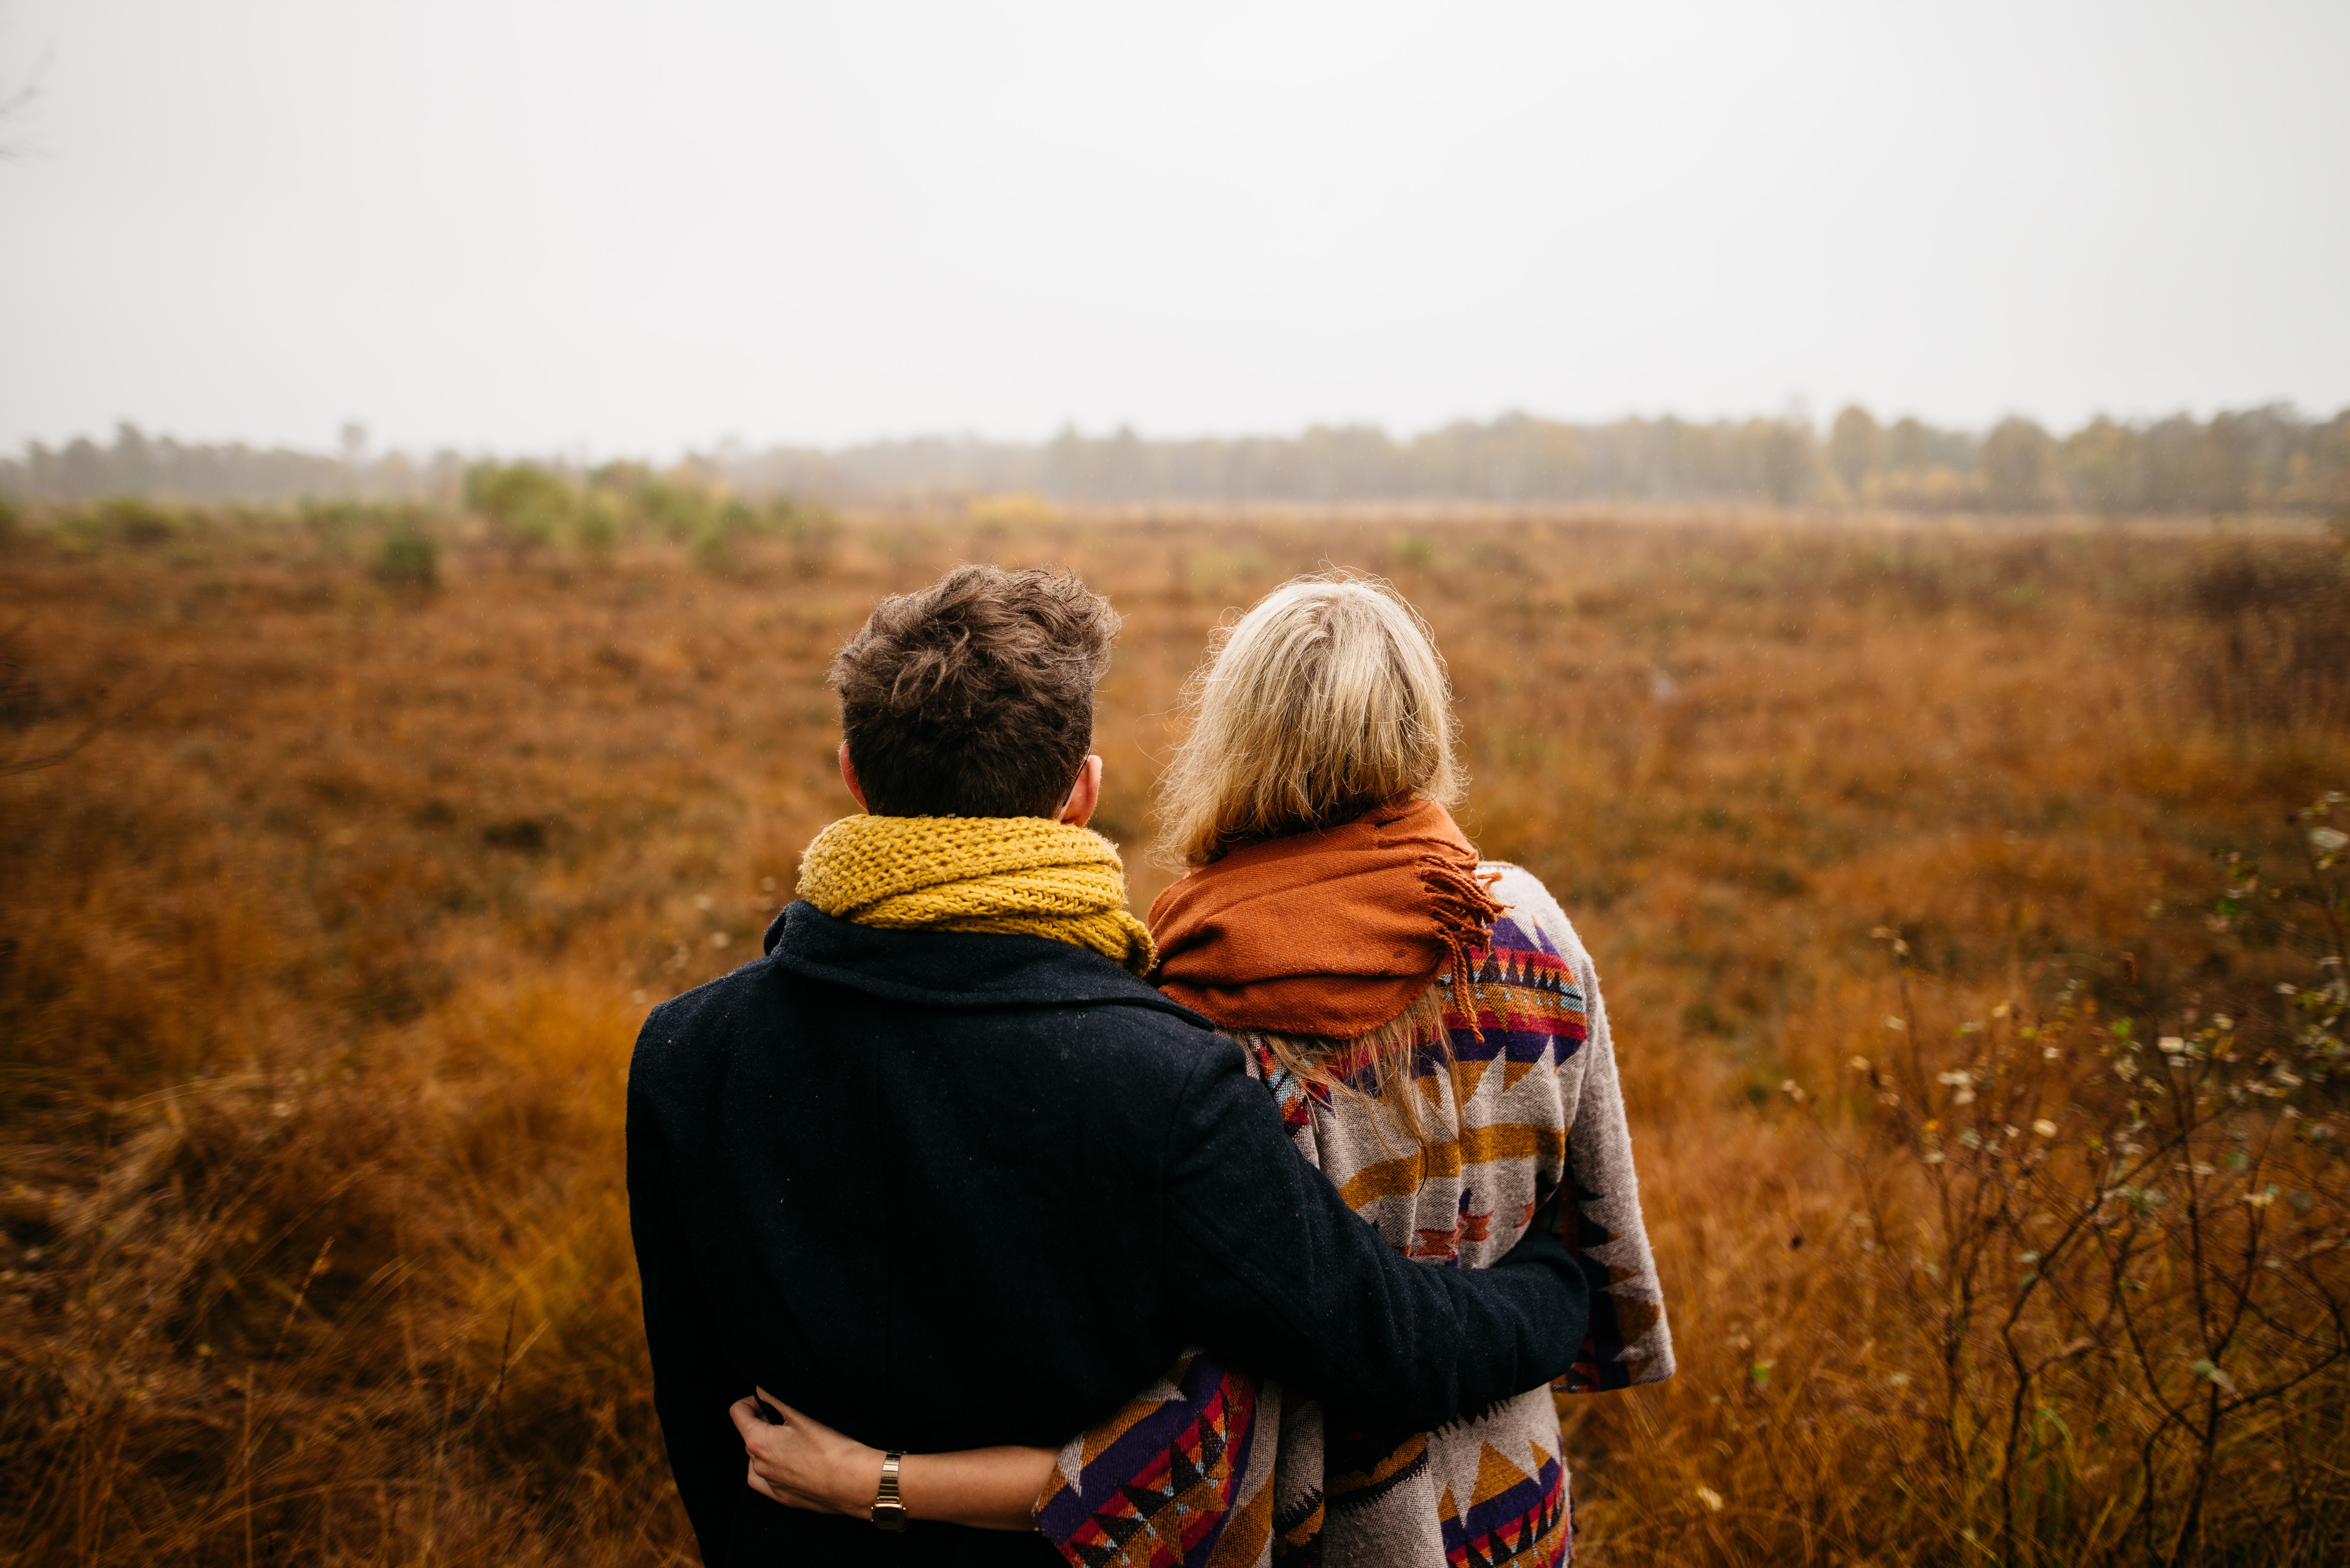 An image of a man and a woman holding each other whilst looking out to the distance, to represent the loved ones around you and how Blossom Ceremonies discusses their funeral ceremony wishes.